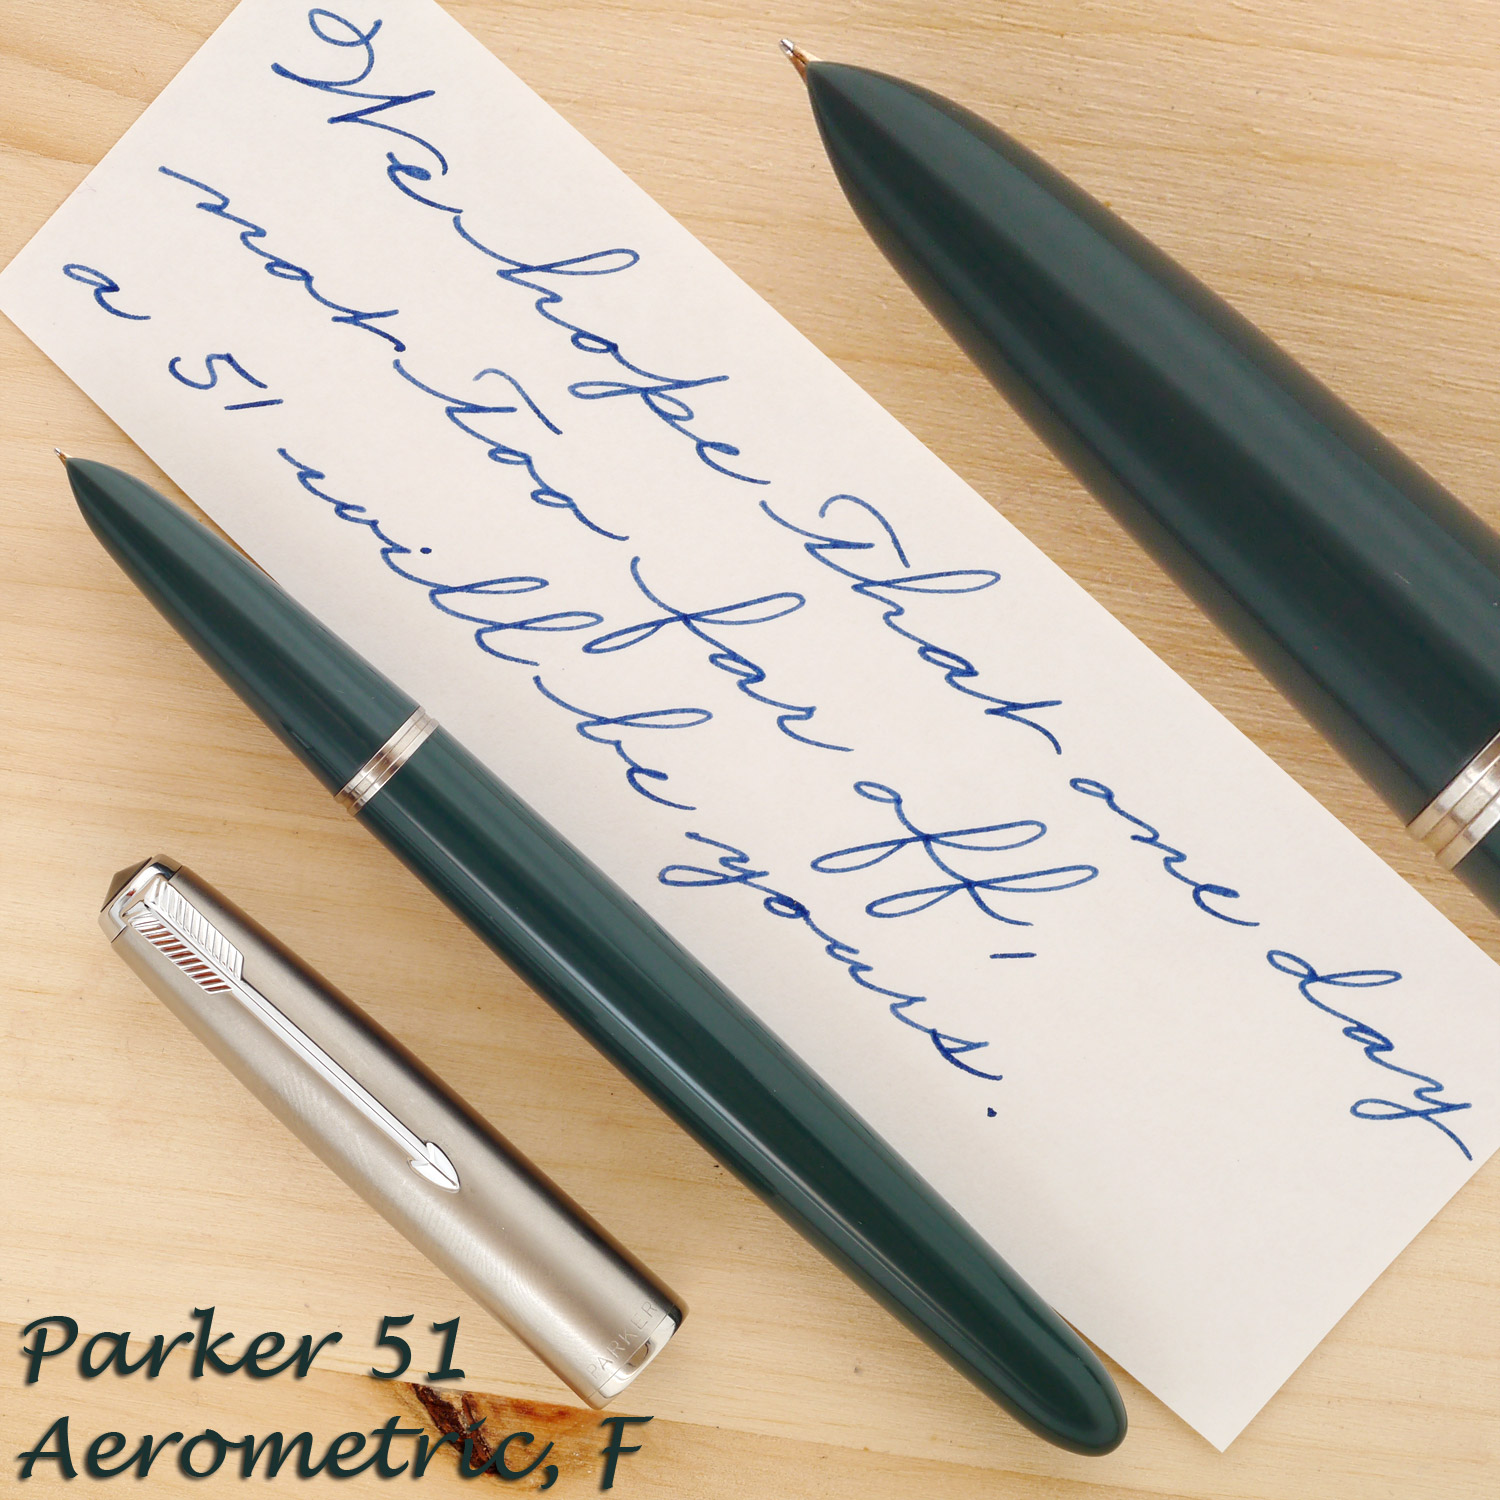 Parker 51 Aerometric Navy Gray, F